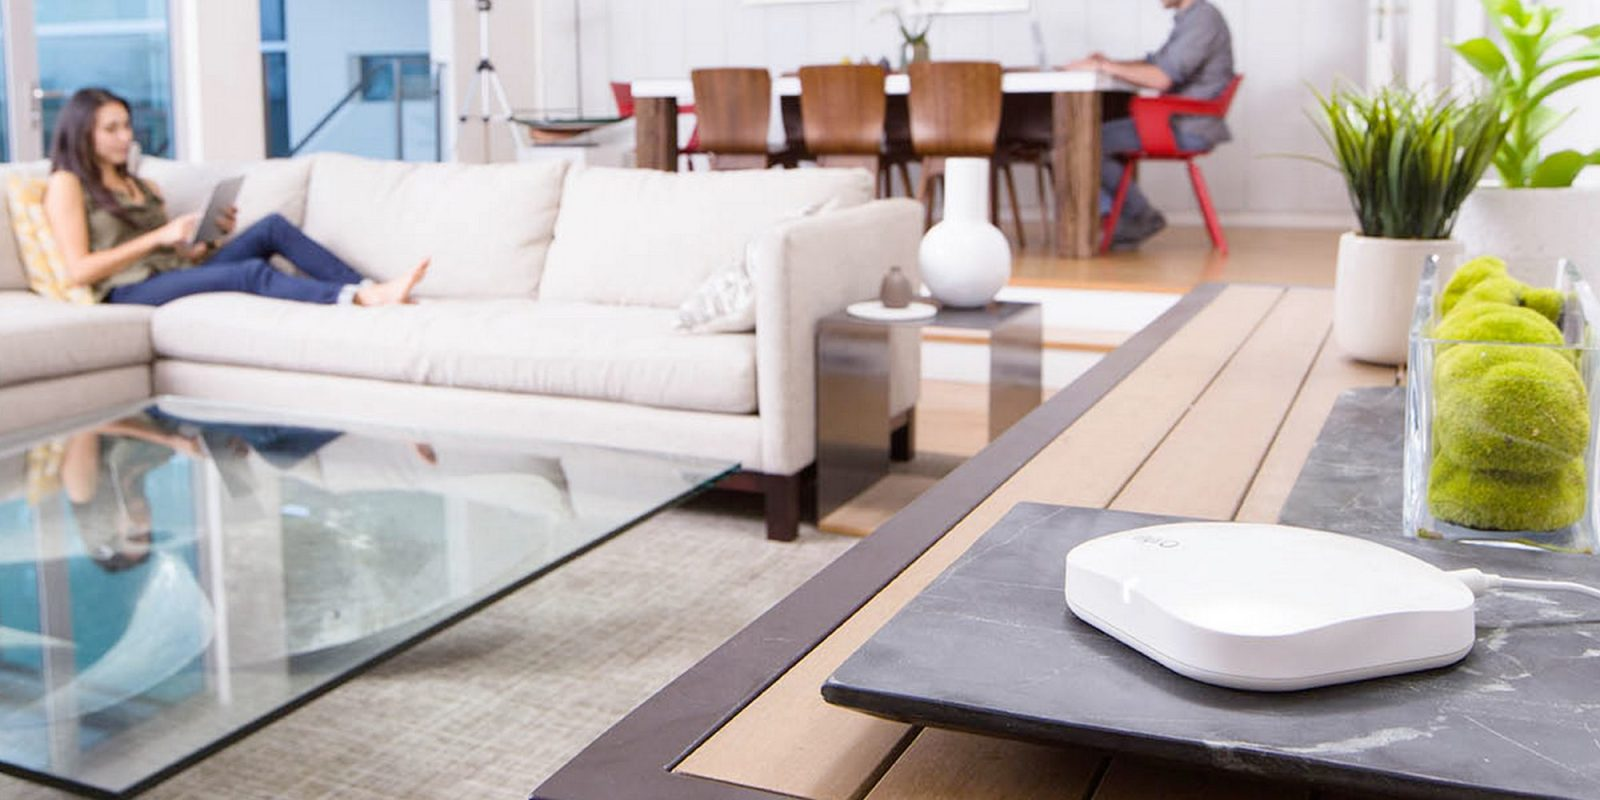 Eero rolls out two new subscription offerings focused on security